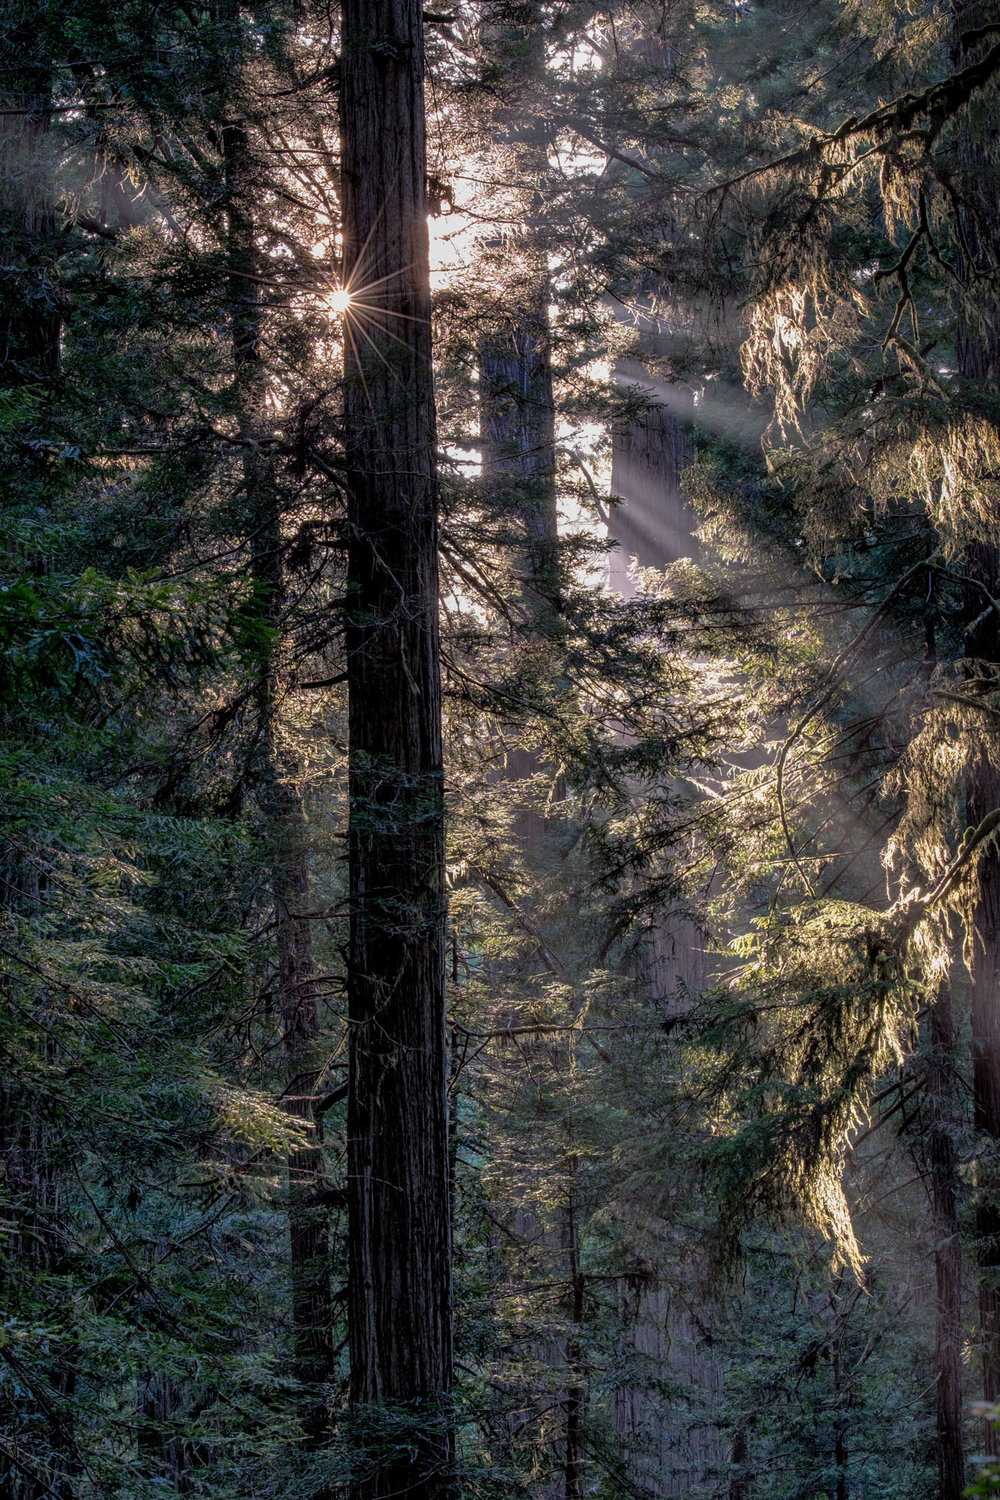 Light beams shine through the thick forest.